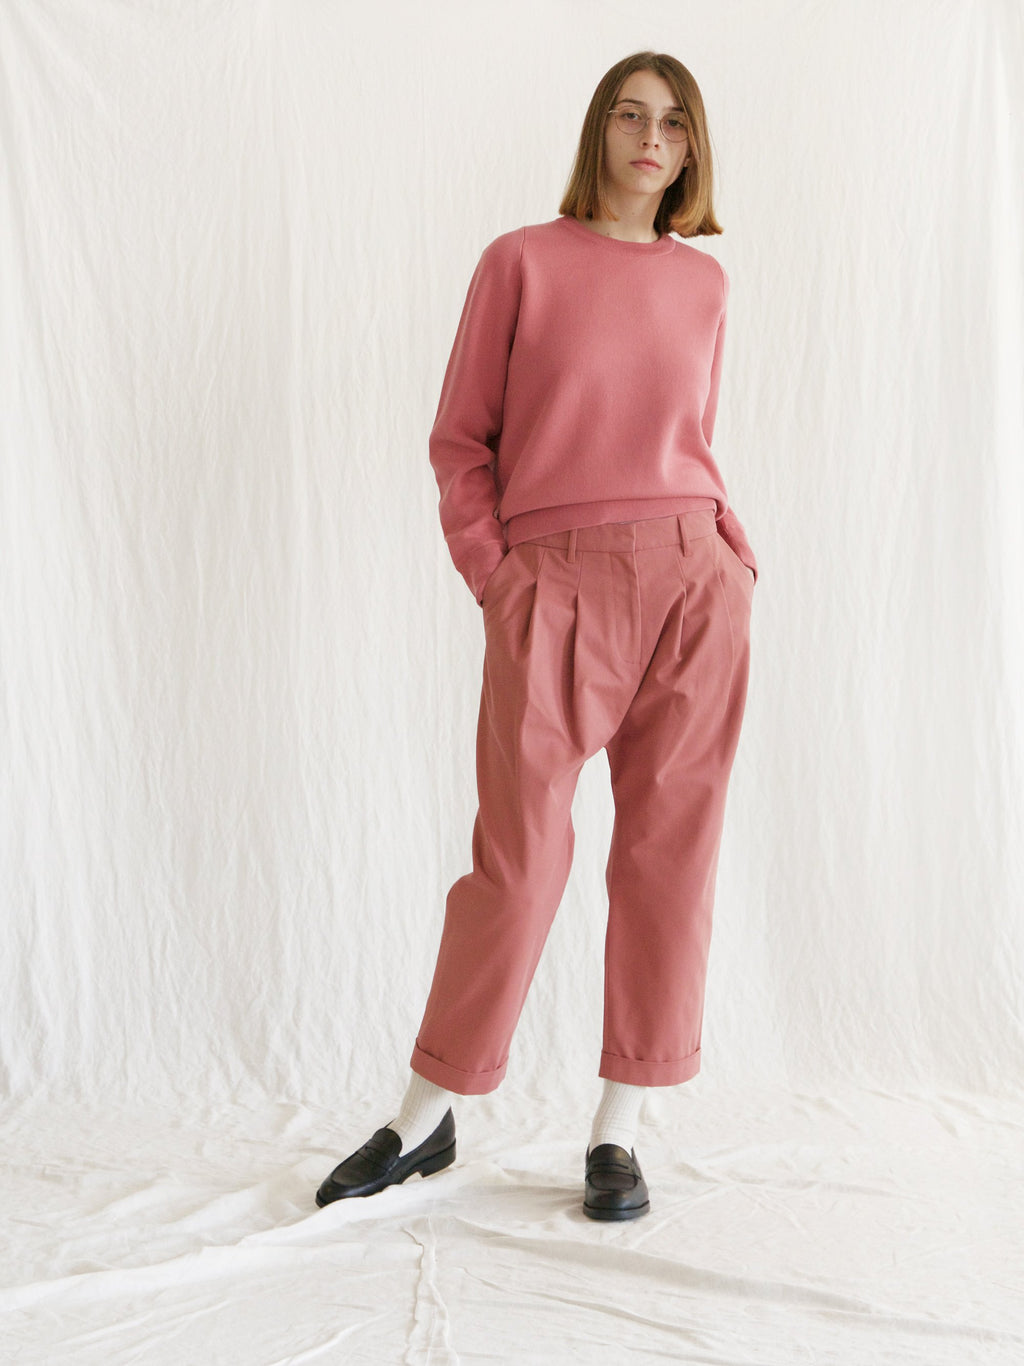 Namu Shop - Studio Nicholson Double Pleat Easy Pants - Medina Pink